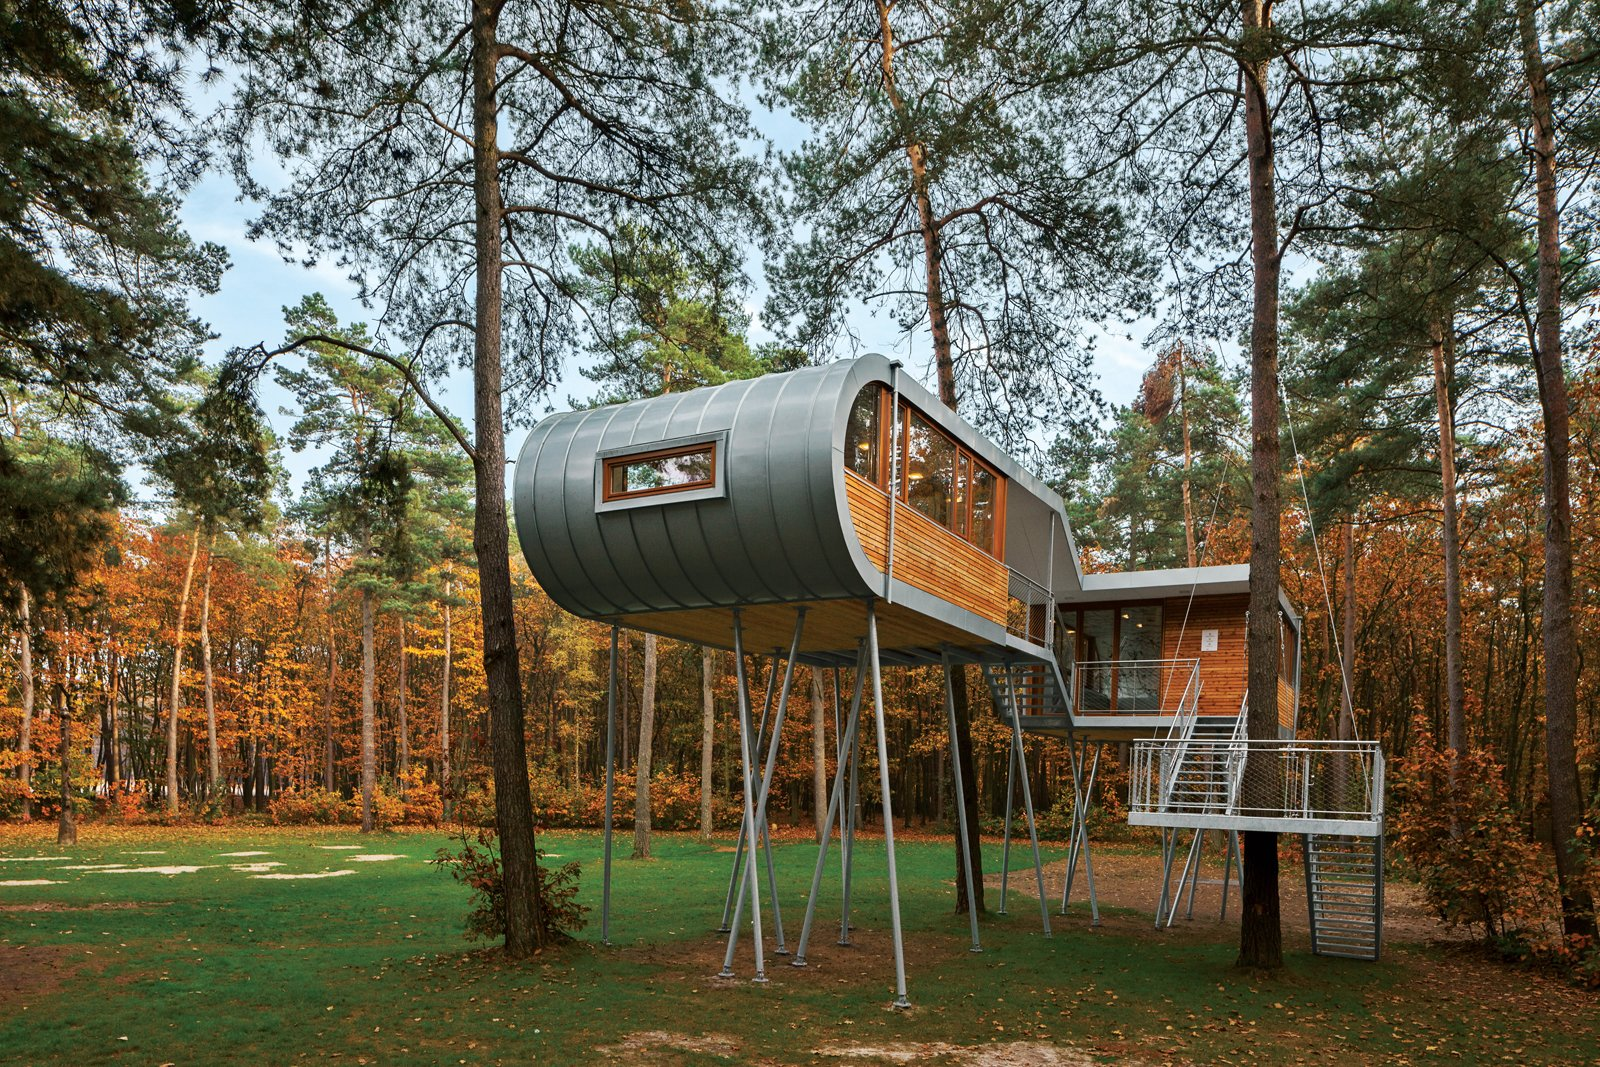 Photo courtesy Baumraum  Photo 5 of 25 in Photo Essay: Enchanting Tree Houses from A Modern Treehouse in Belgium